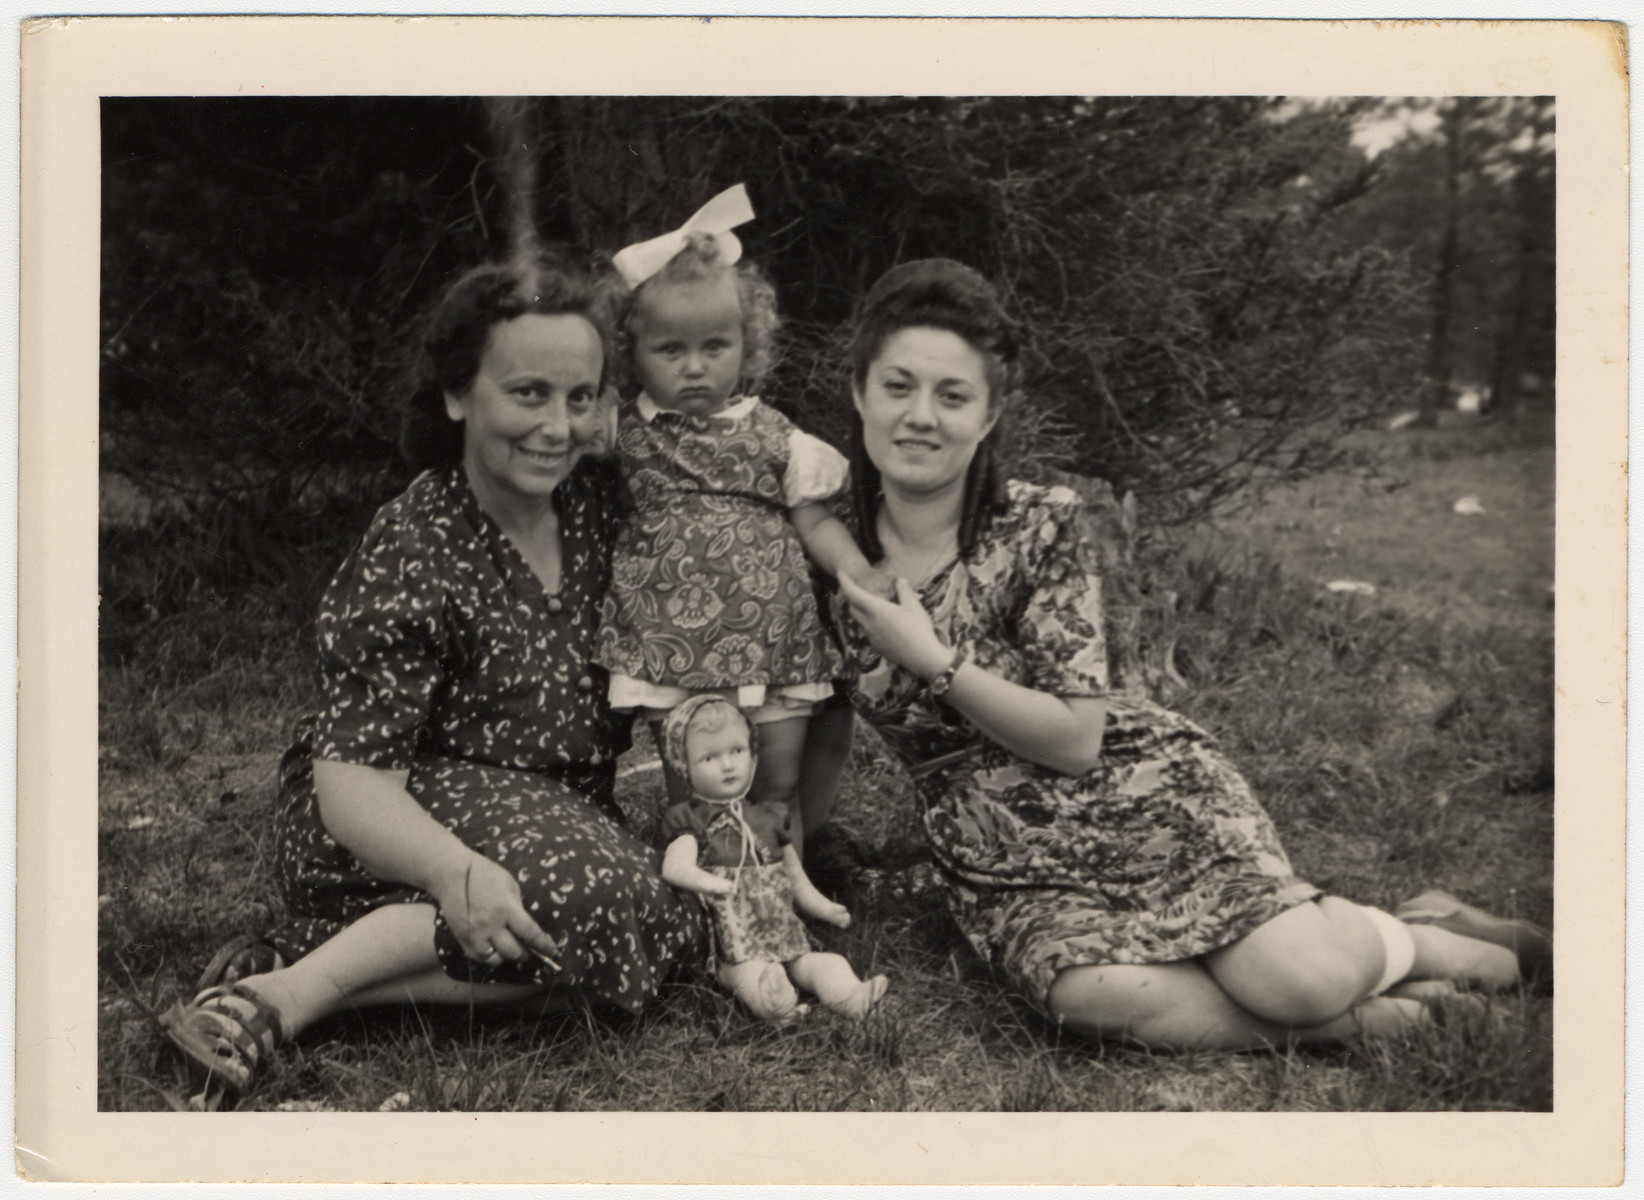 """Shulamit Perlmutter (right) poses with another woman and her young daughter before she leaves for America.  The original caption reads """"To Dear Muszka, So that she should remember that we love her and ask her not to forget us, even in America.  Ania and Sala""""."""